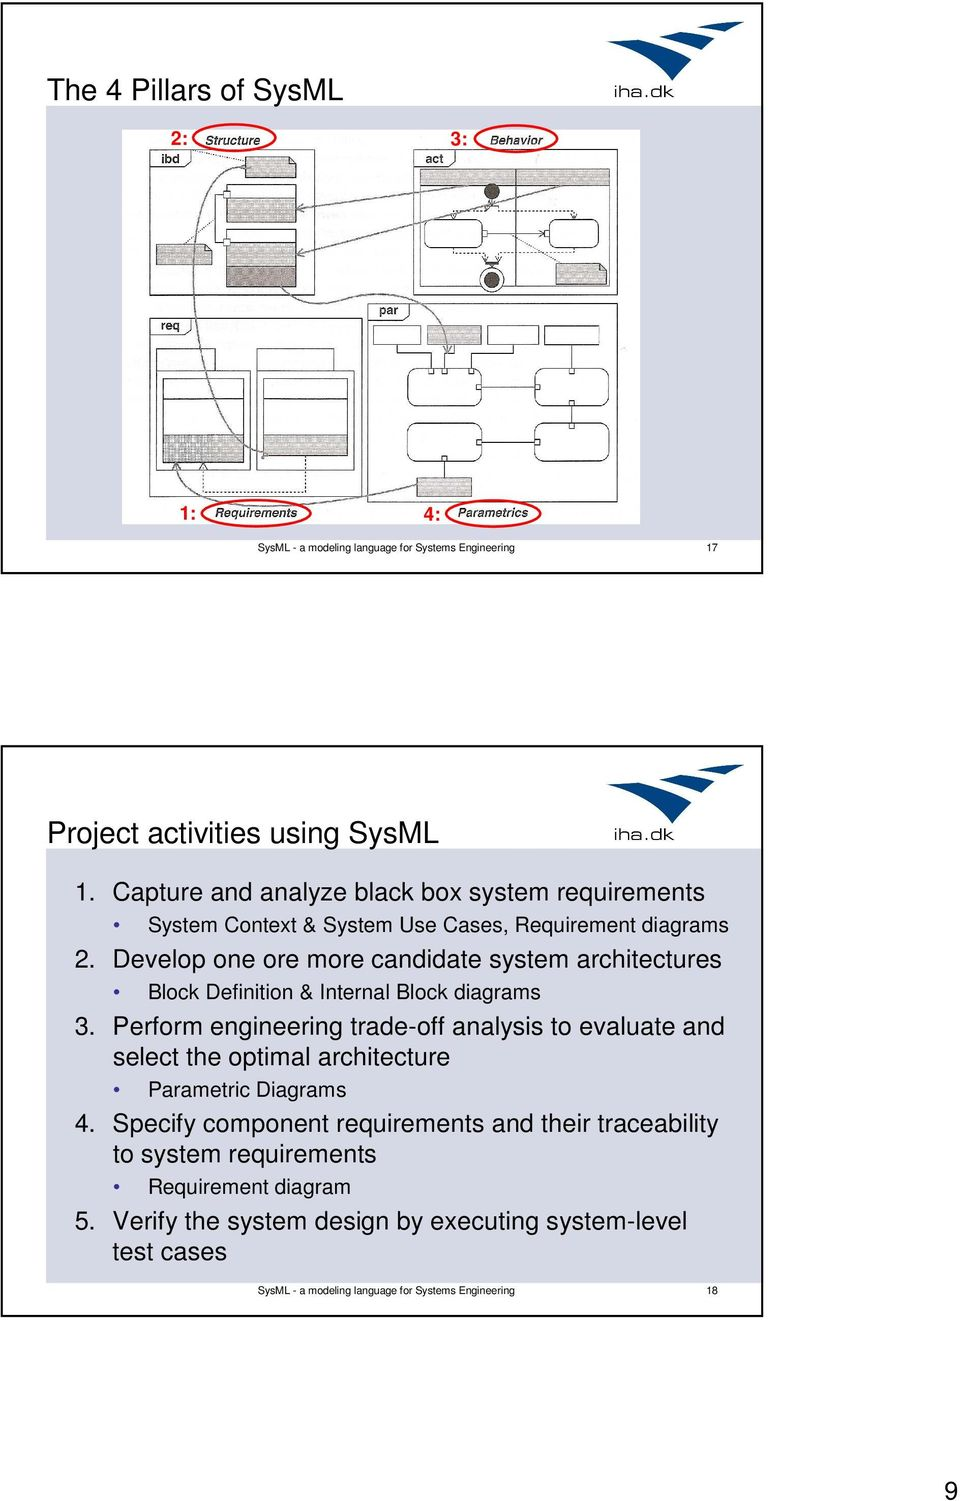 Sysml A Modeling Language For Systems Engineering Pdf Level 2 Block Diagram Develop One Ore More Candidate System Architectures Definition Internal Diagrams